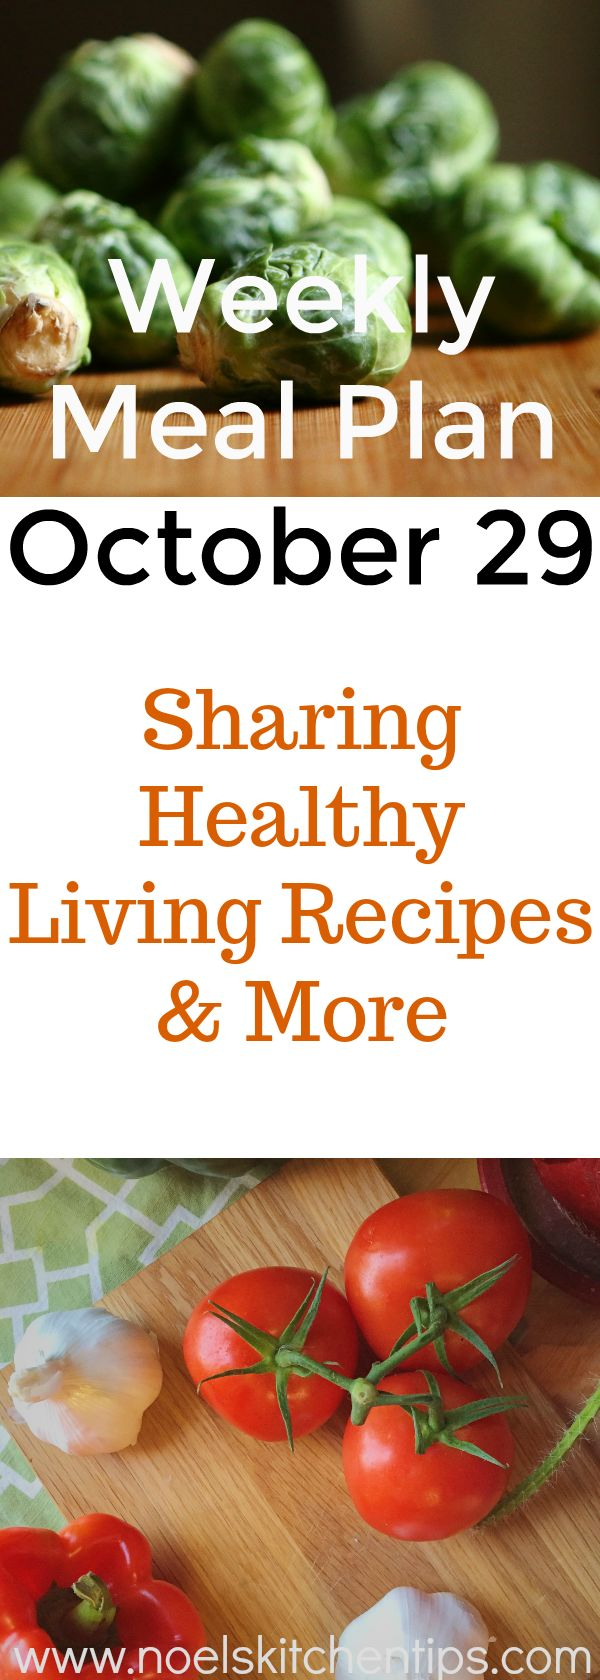 Our Weekly Meal Plan October 29 shares our quick and easy meals along with a little bit of Halloween fun.